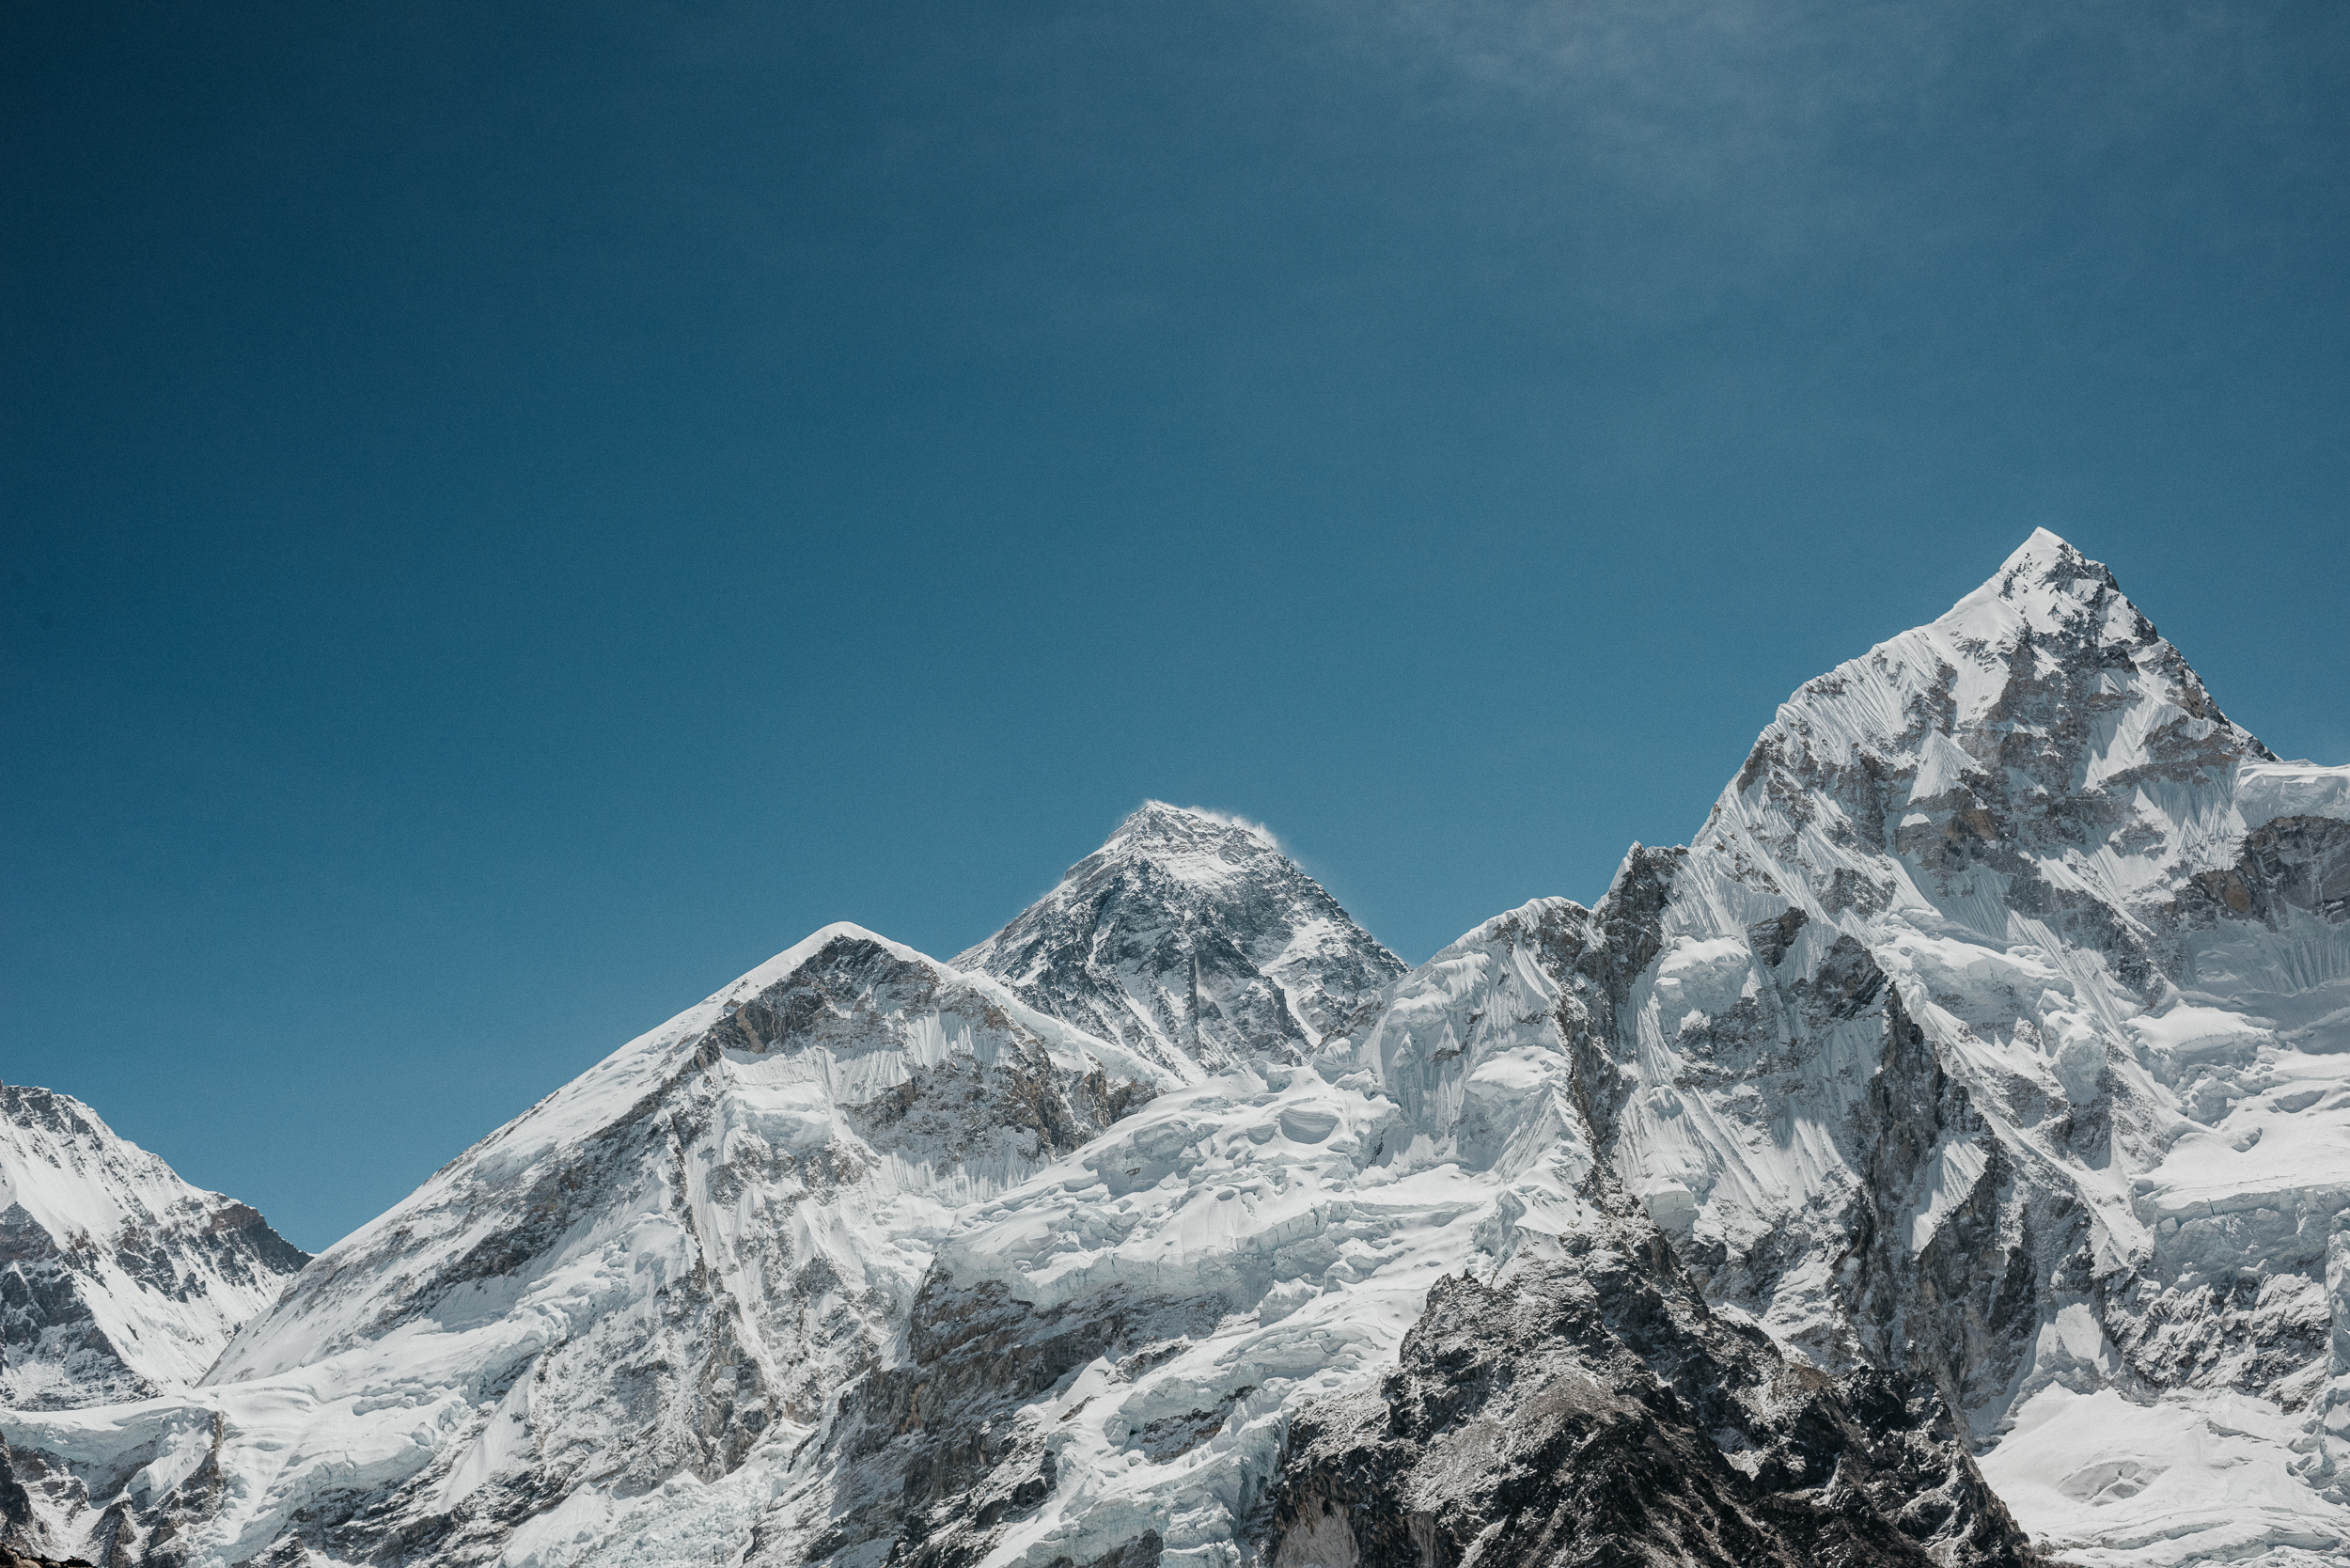 Nepal_EverestBaseCamp_2019_TaraShupe_Photography_DSC_4387.jpg